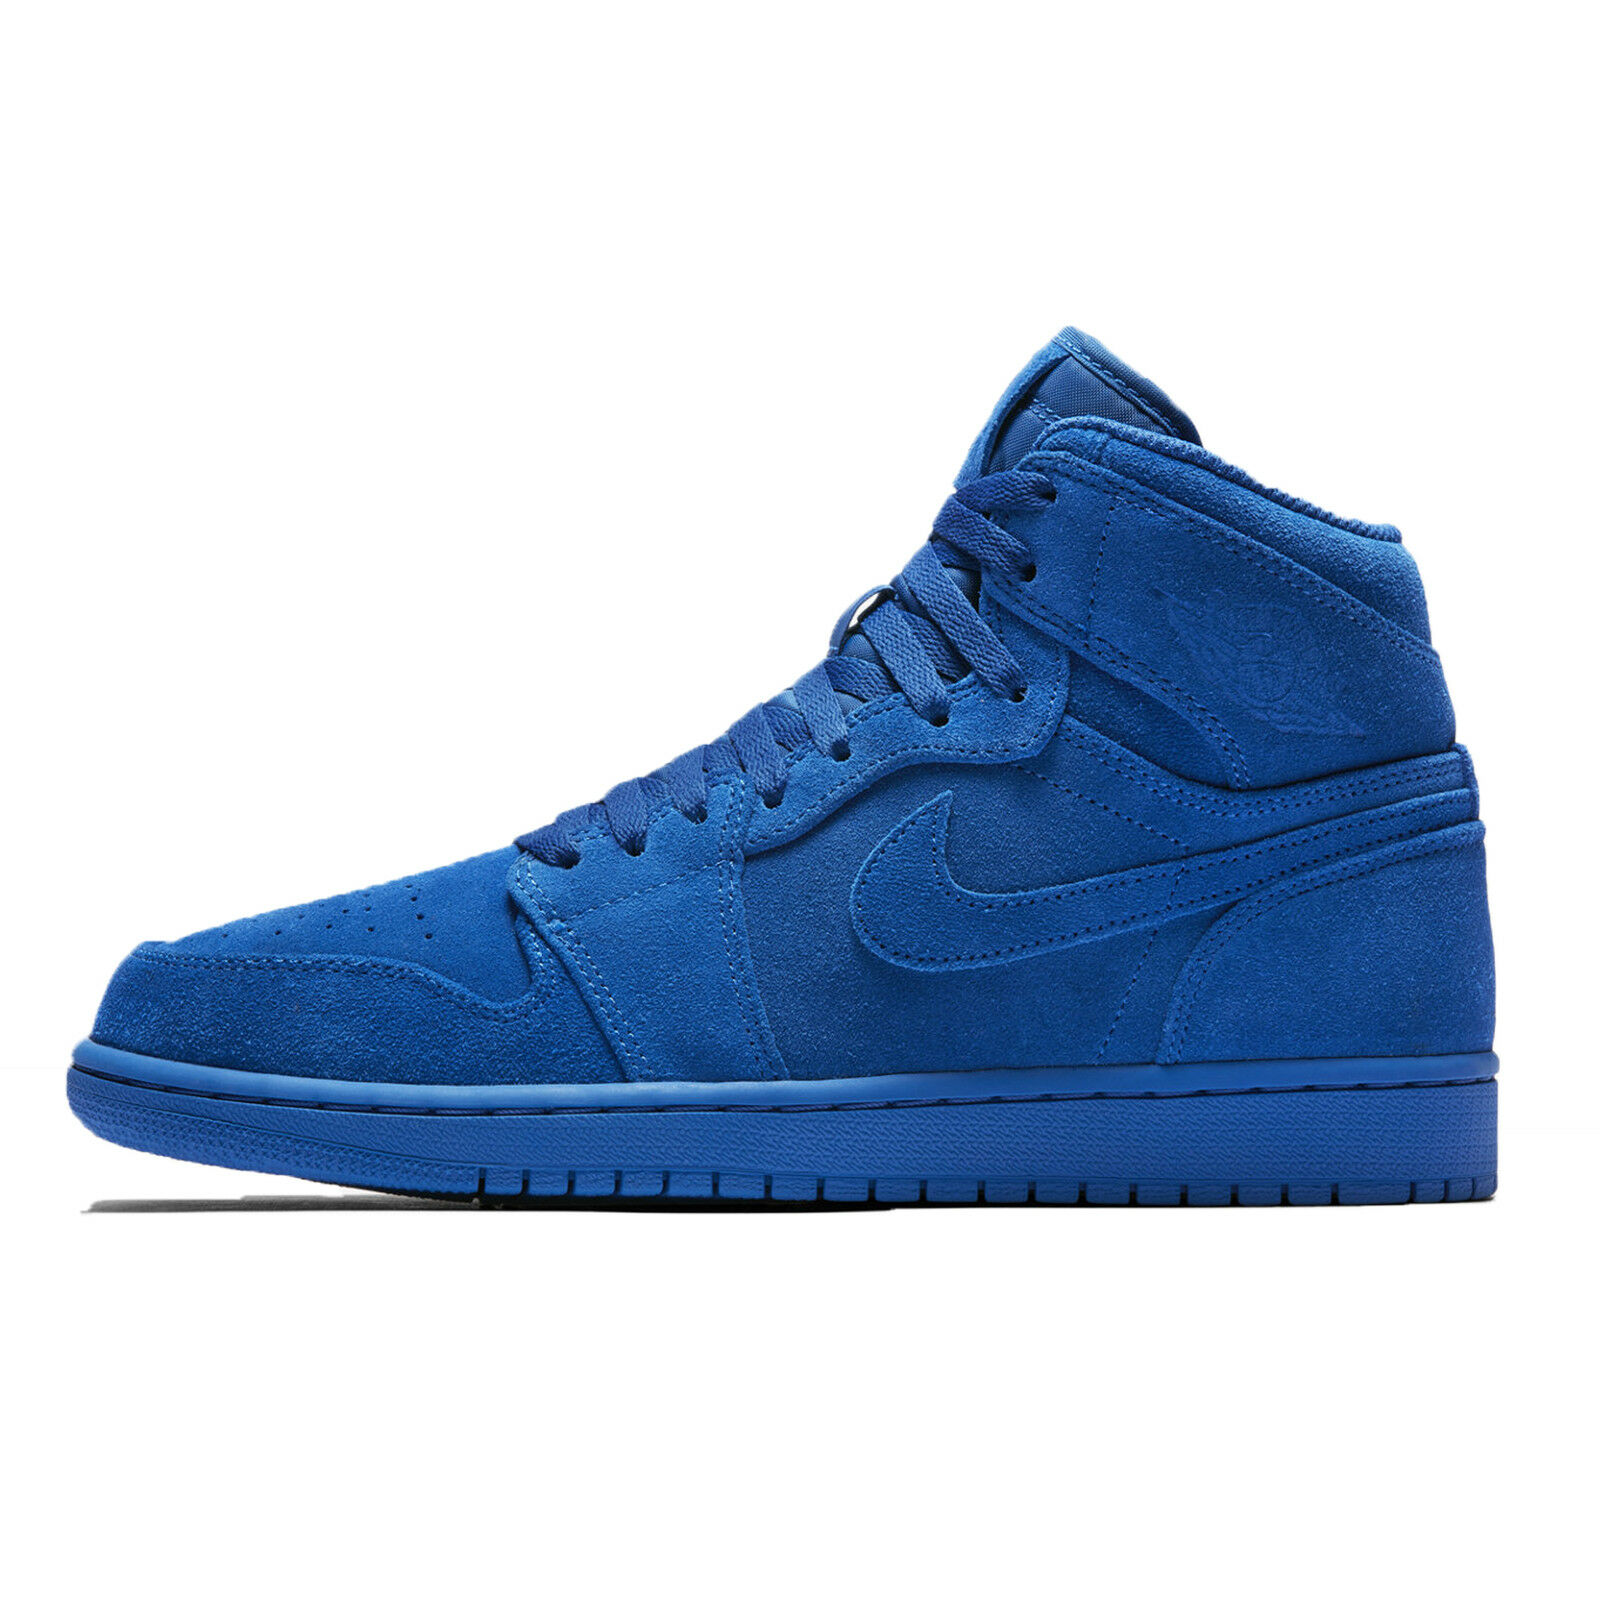 Nike Air Jordan 1 Zapatos retro High 332550-4casual Zapatillas Zapatos 1 de baloncesto fe4b29